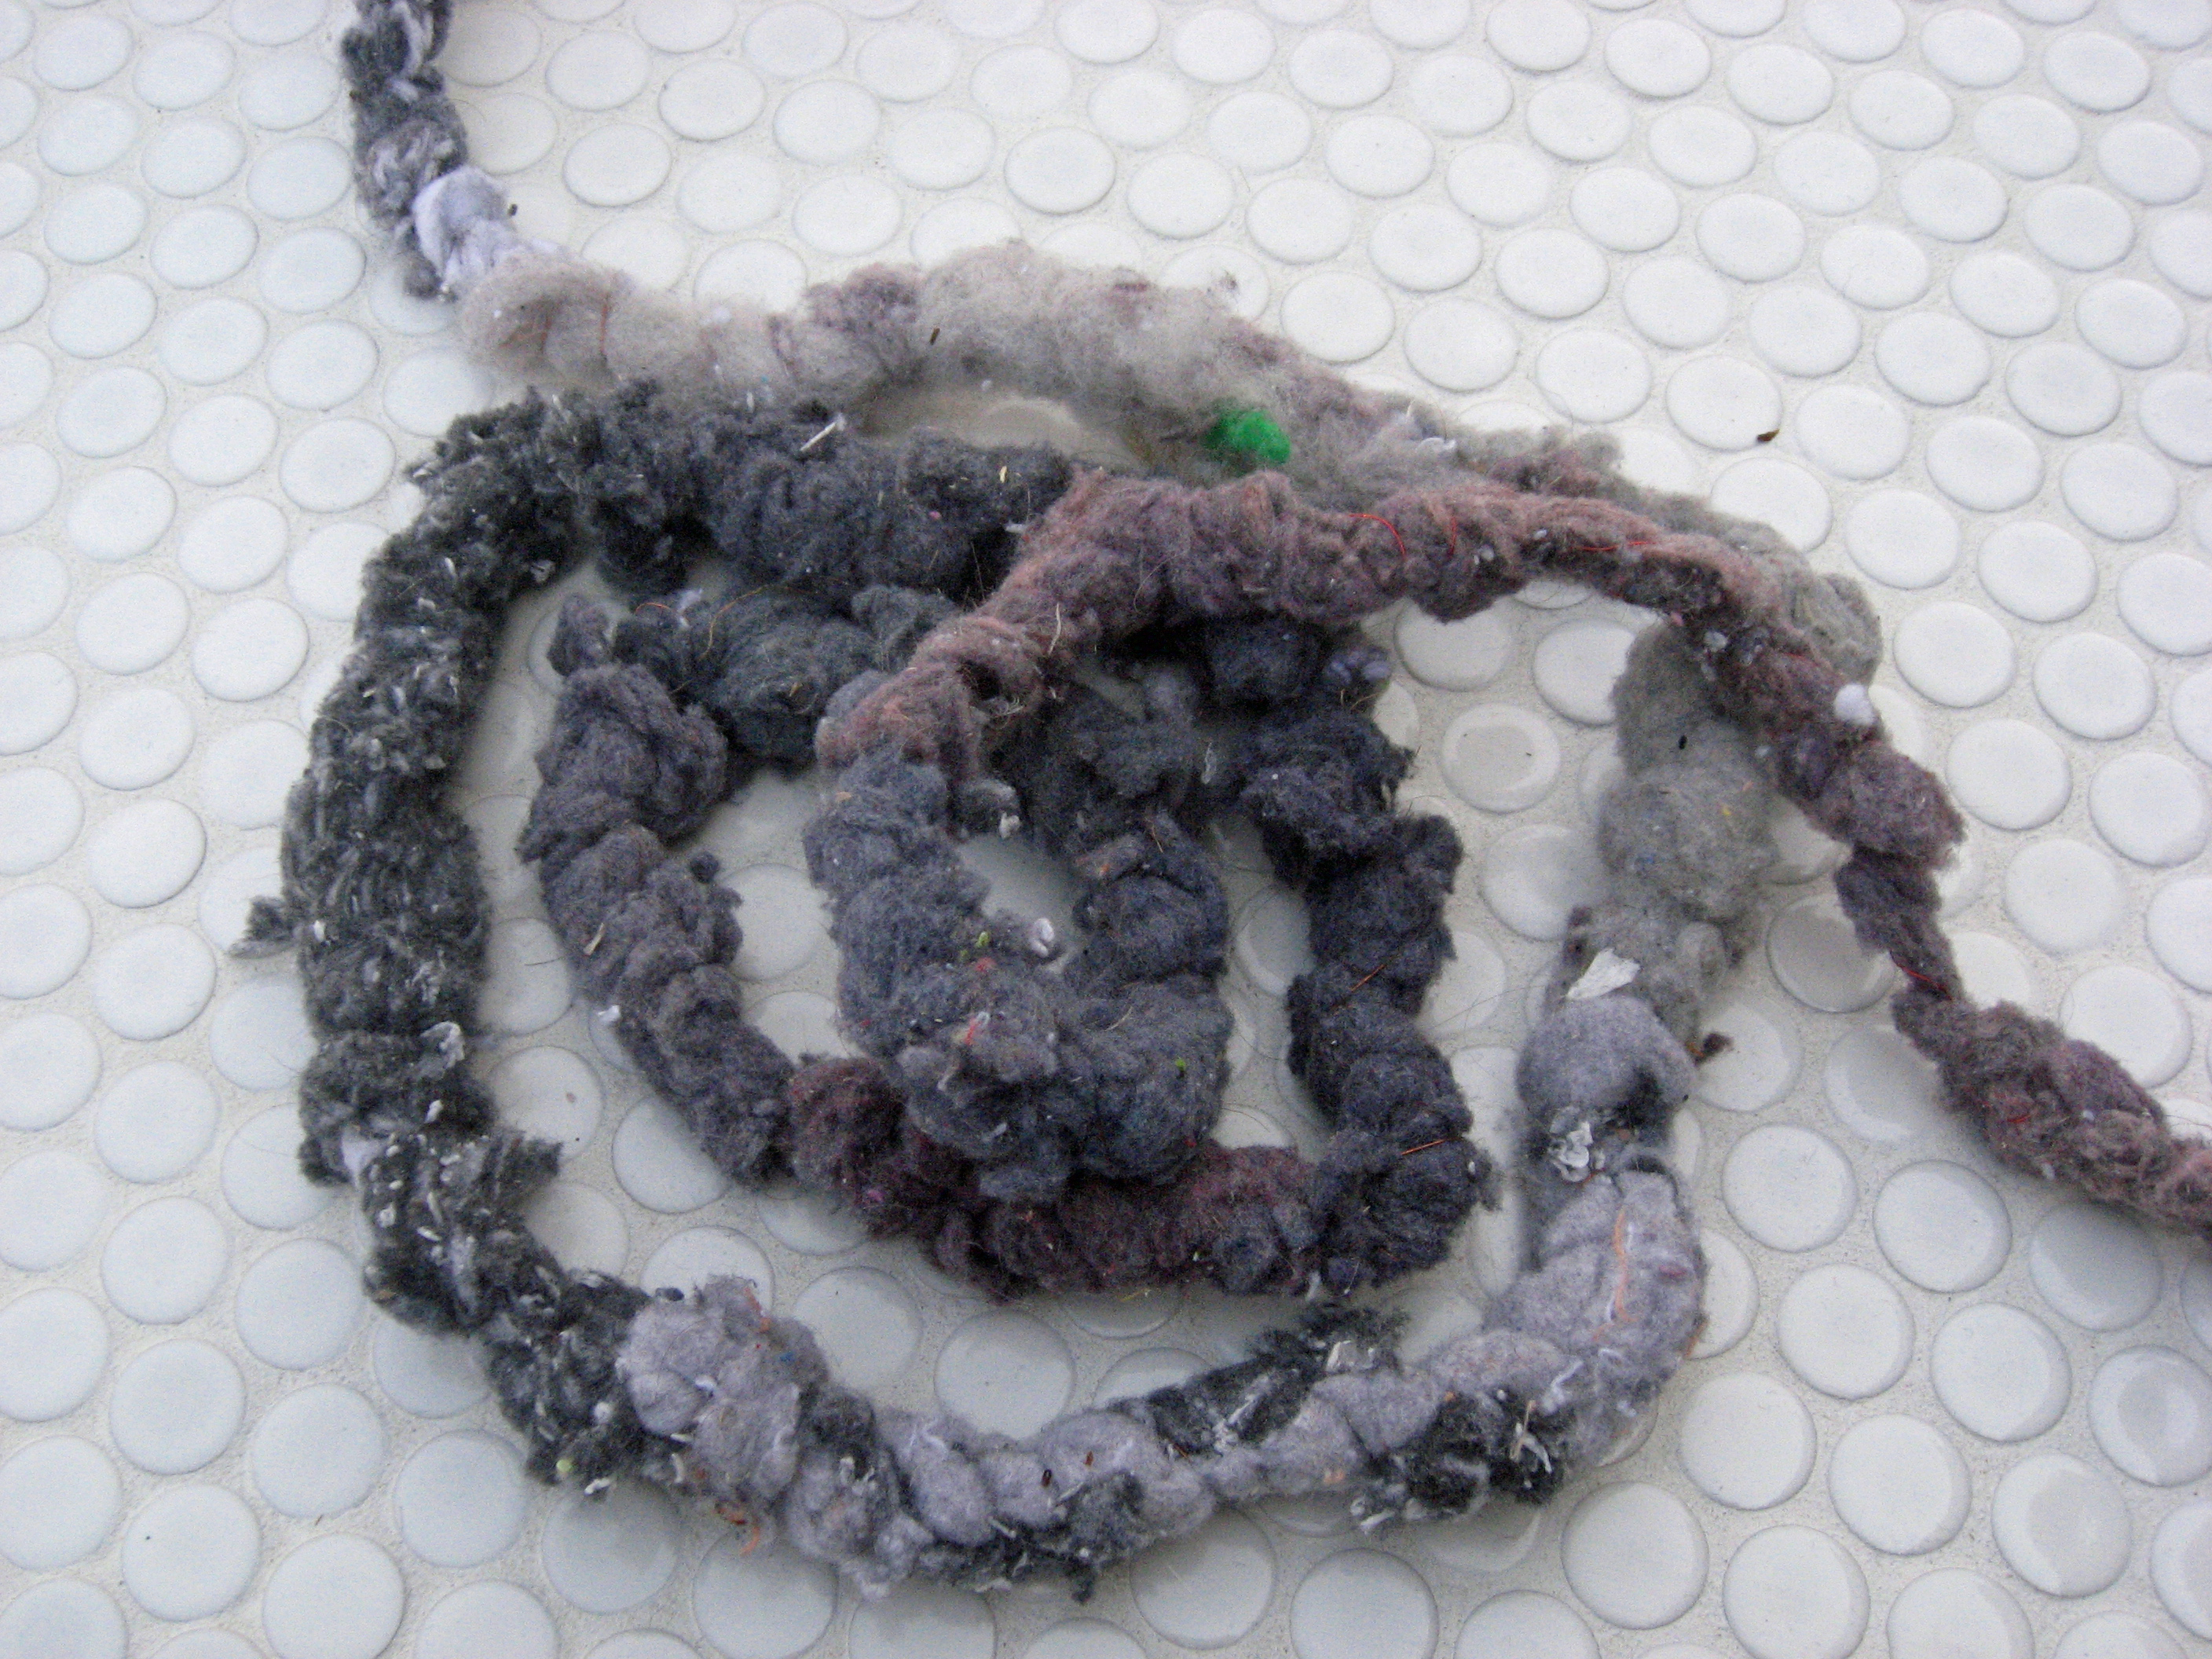 VESSELS, detail of dryer lint cord